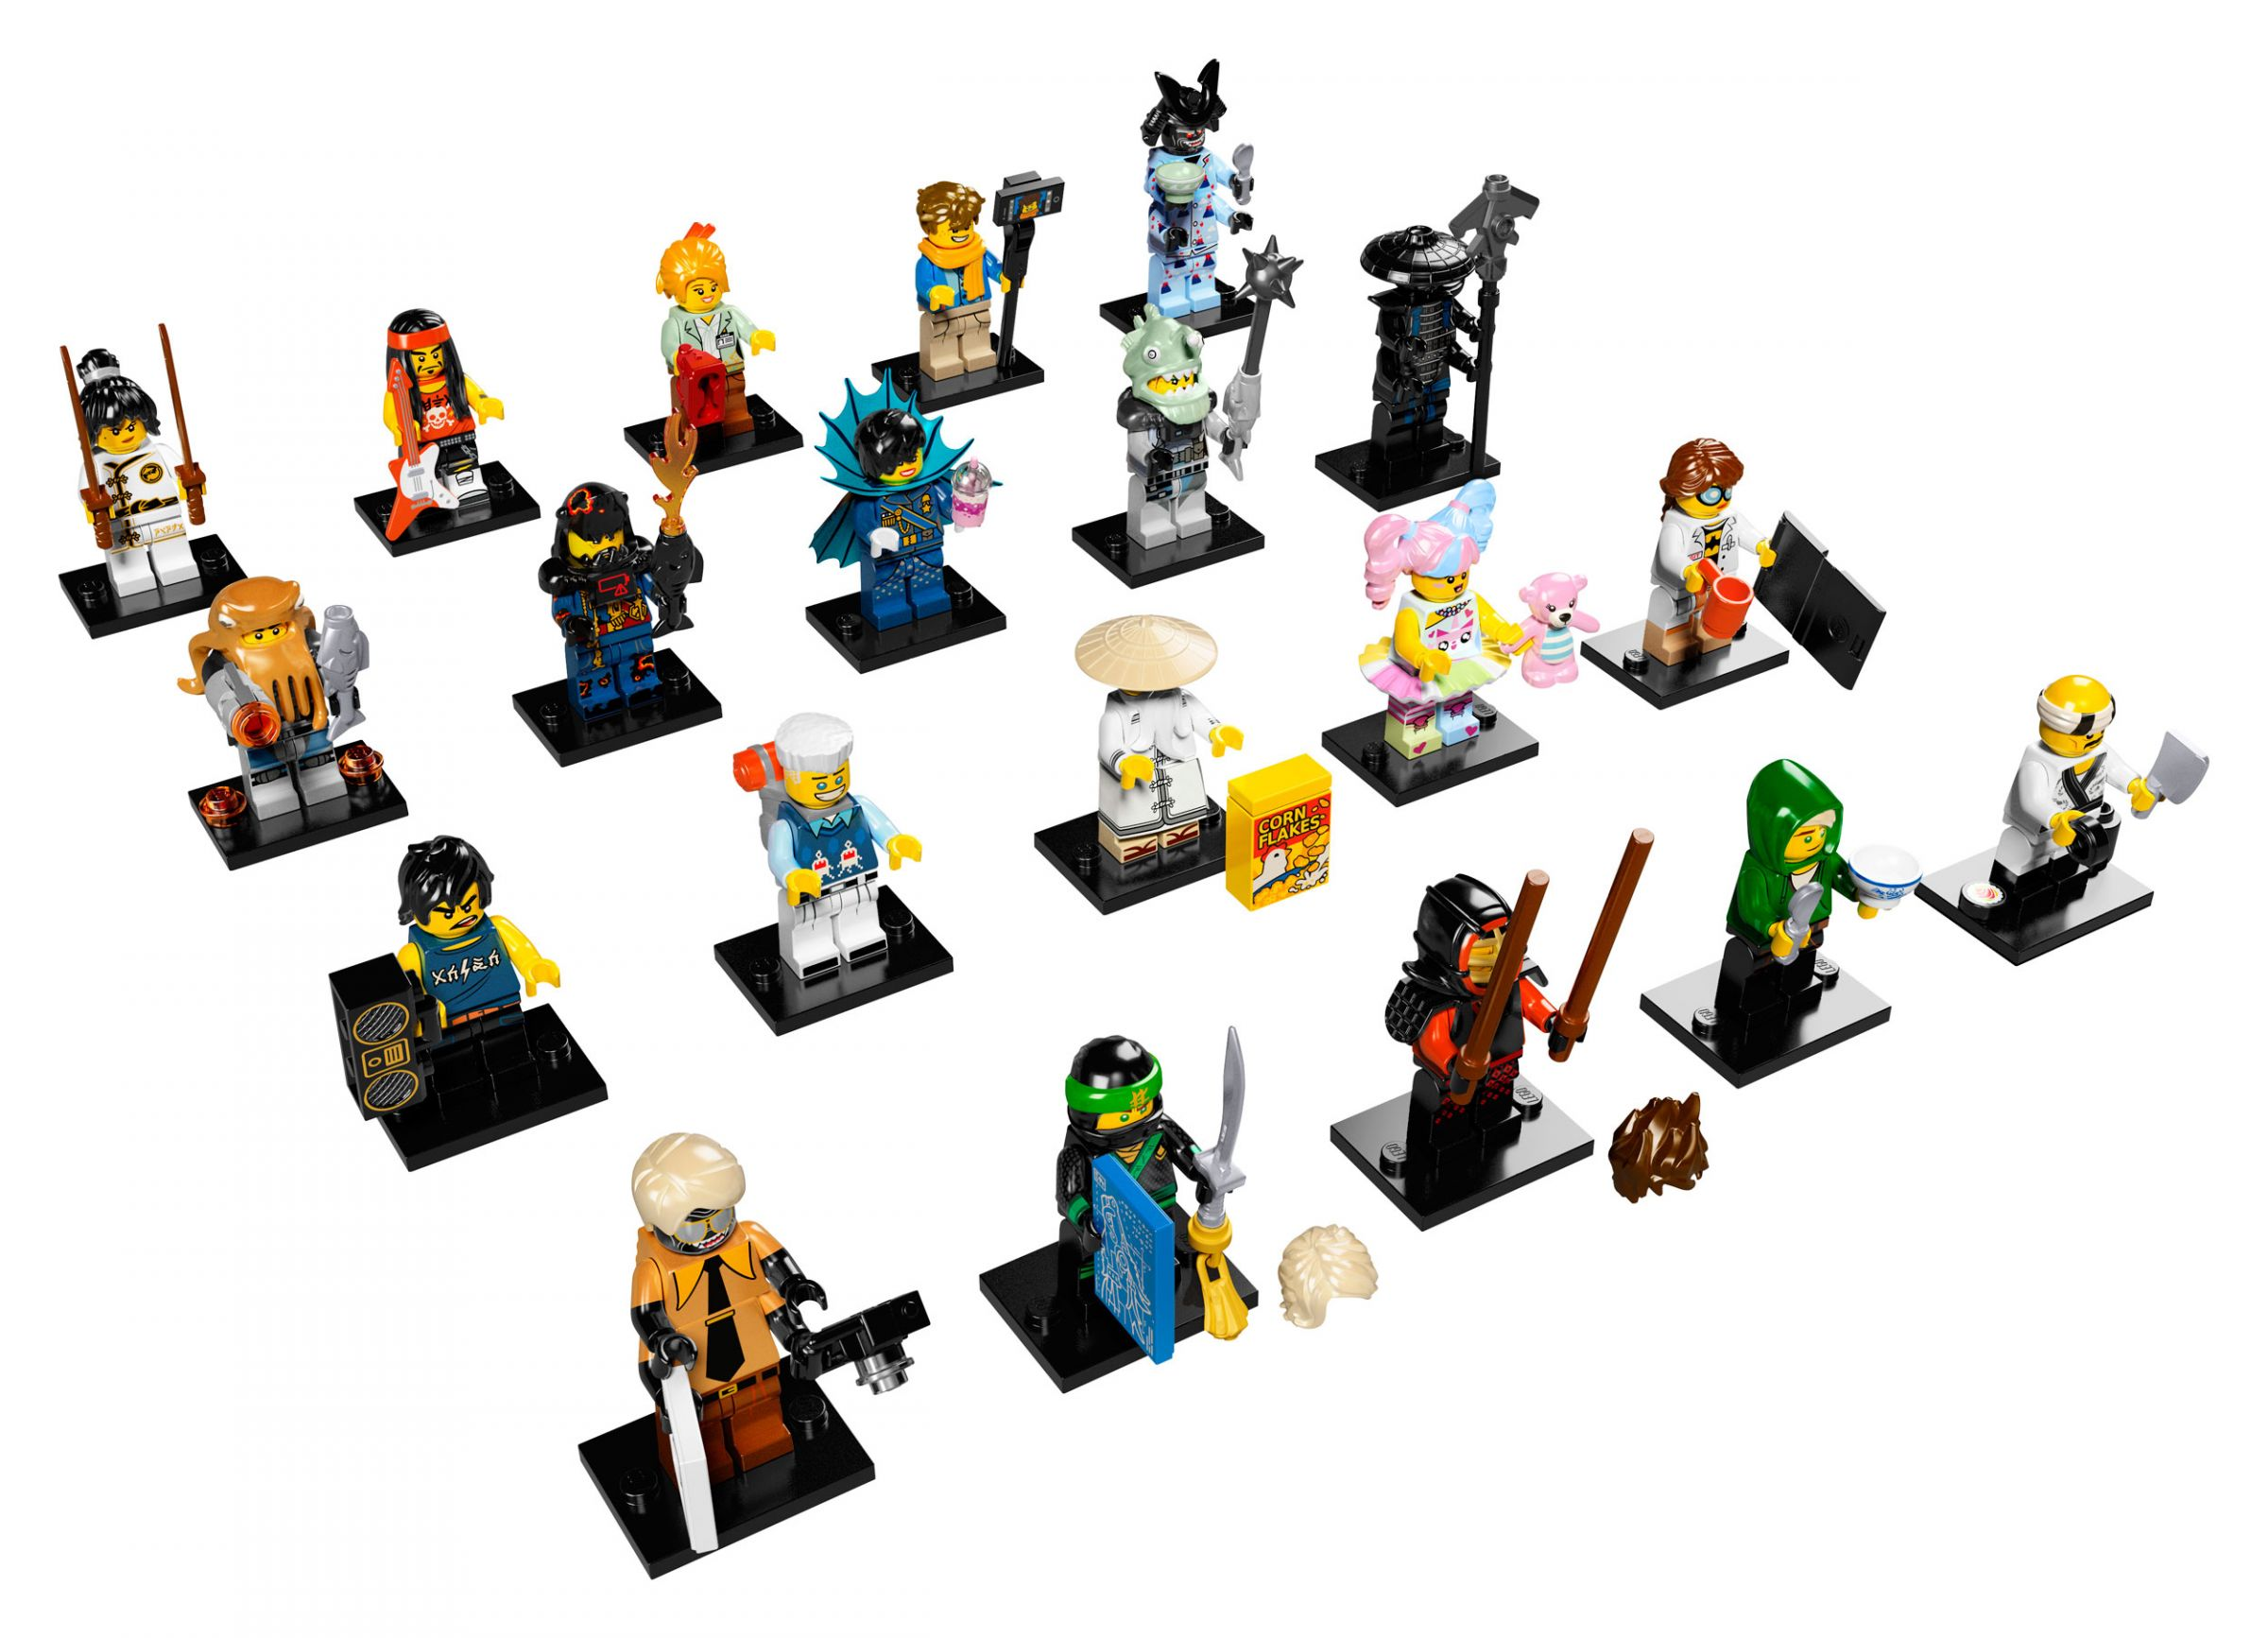 LEGO Collectable Minifigures 71019 LEGO® Ninjago Movie Minifiguren Serie 60er Box LEGO_71019_Ninjago_Movie_Minifiguren.jpg